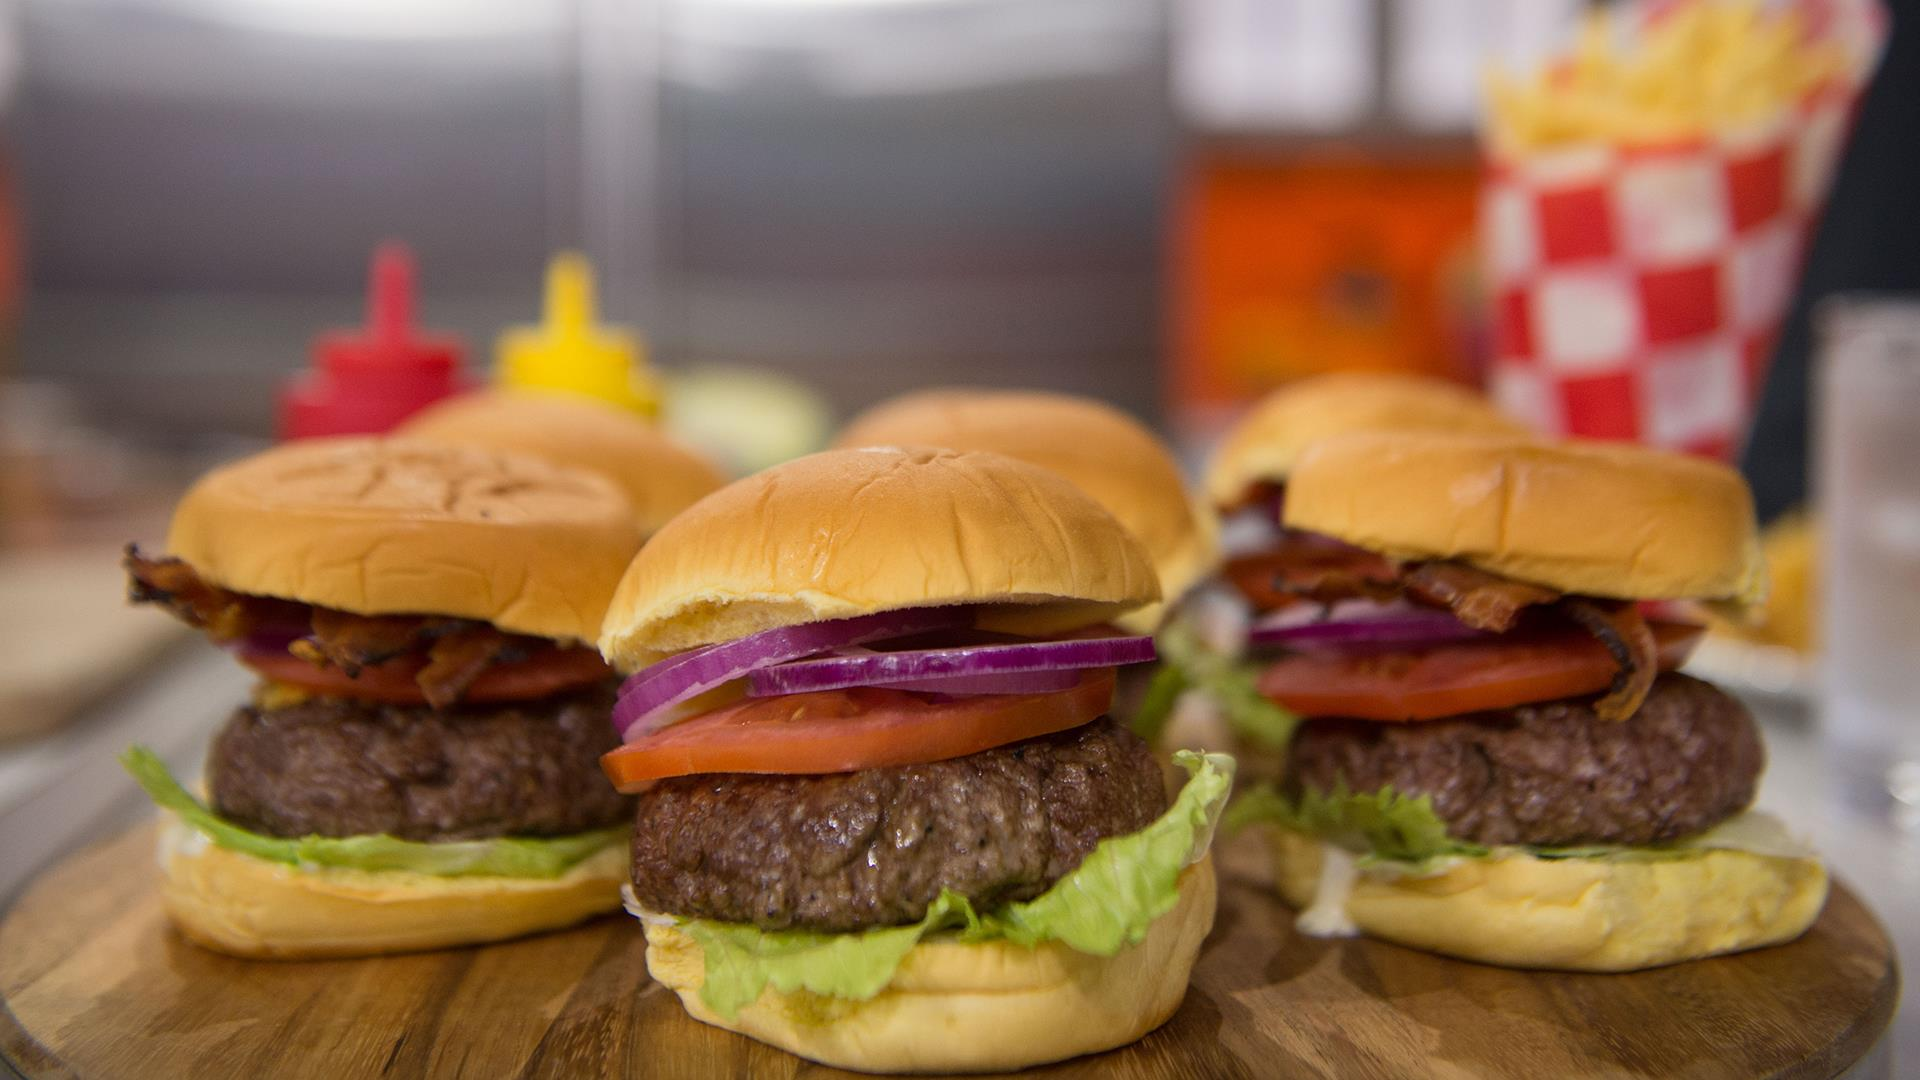 How to choose healthy fast food burgers at McDonald's